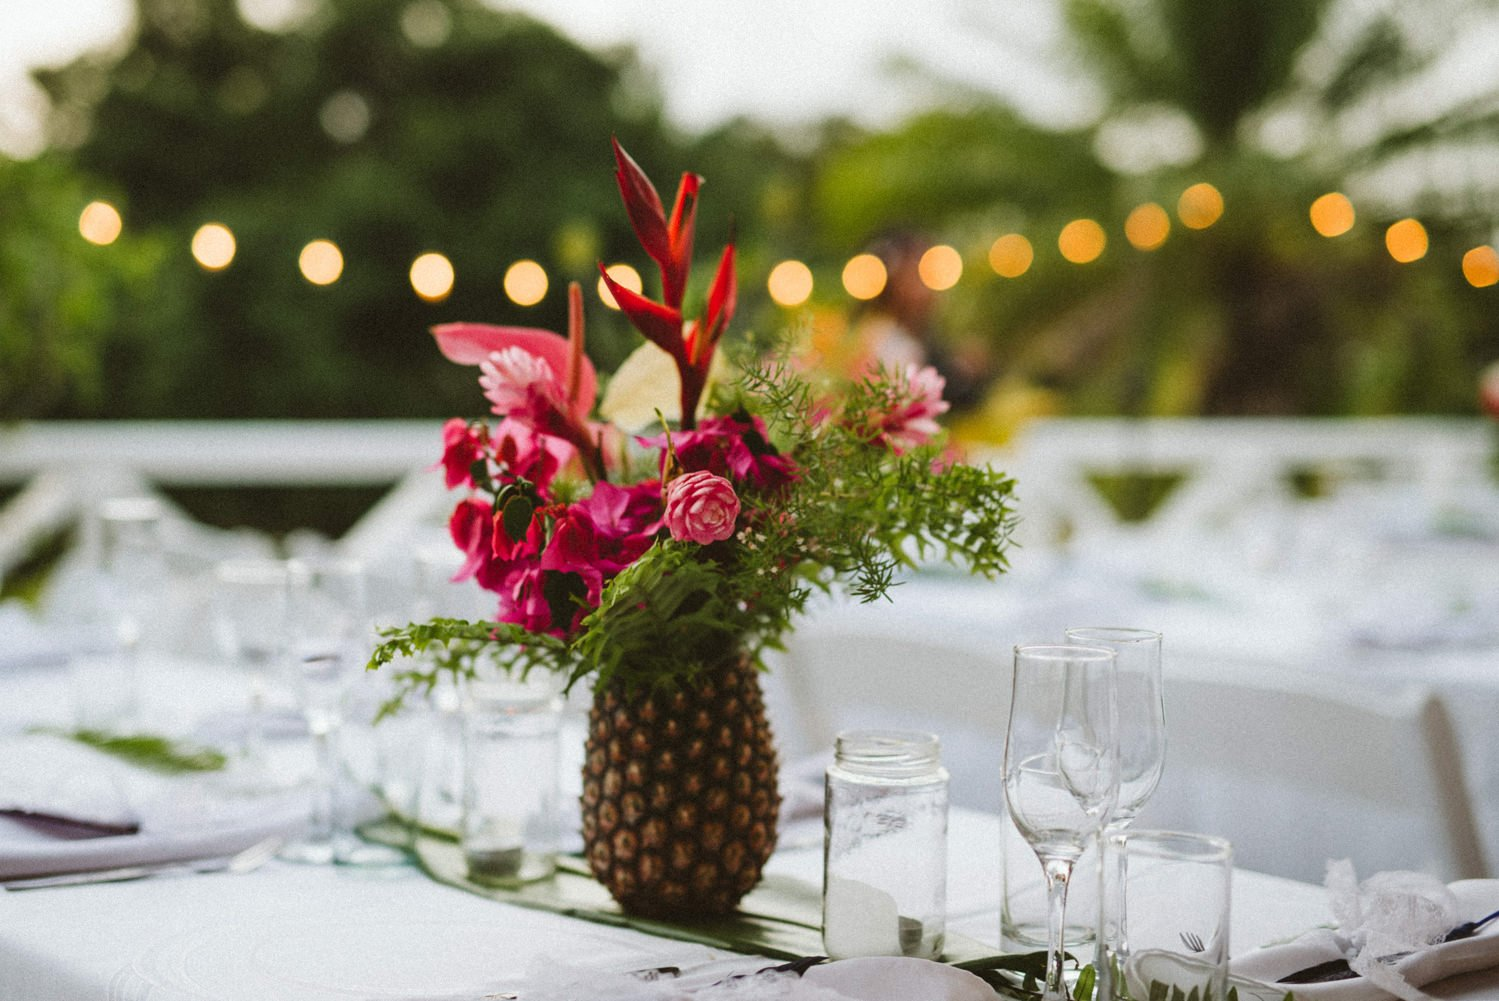 Pineapple with bright flowers to decorate Tobago wedding